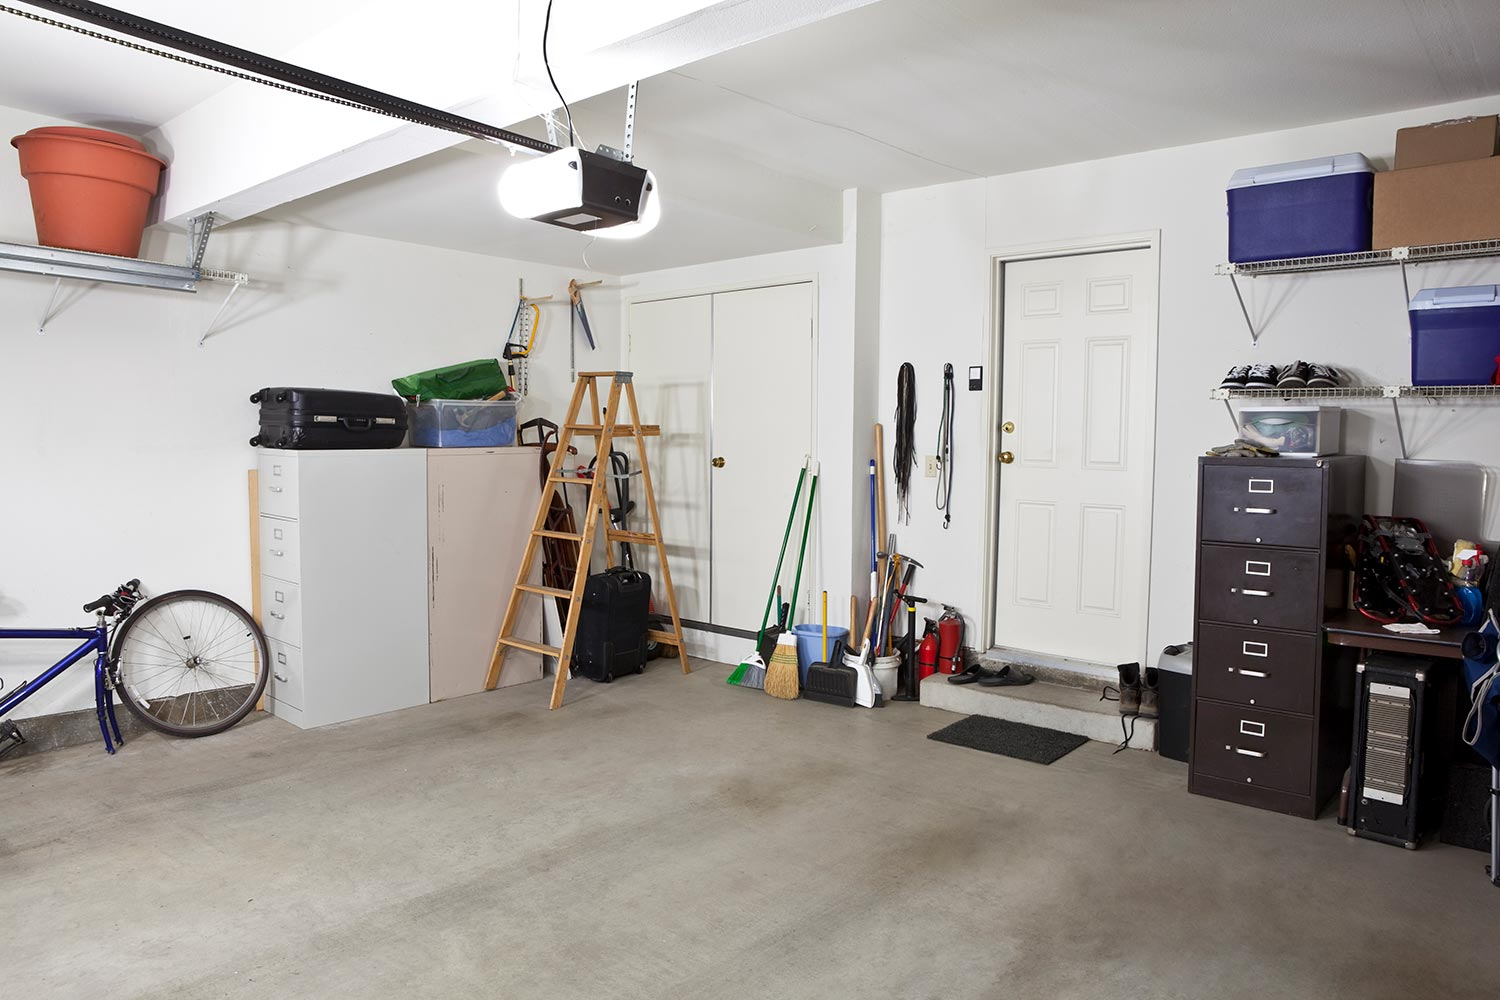 Photo of clean garage with ladder and other tools